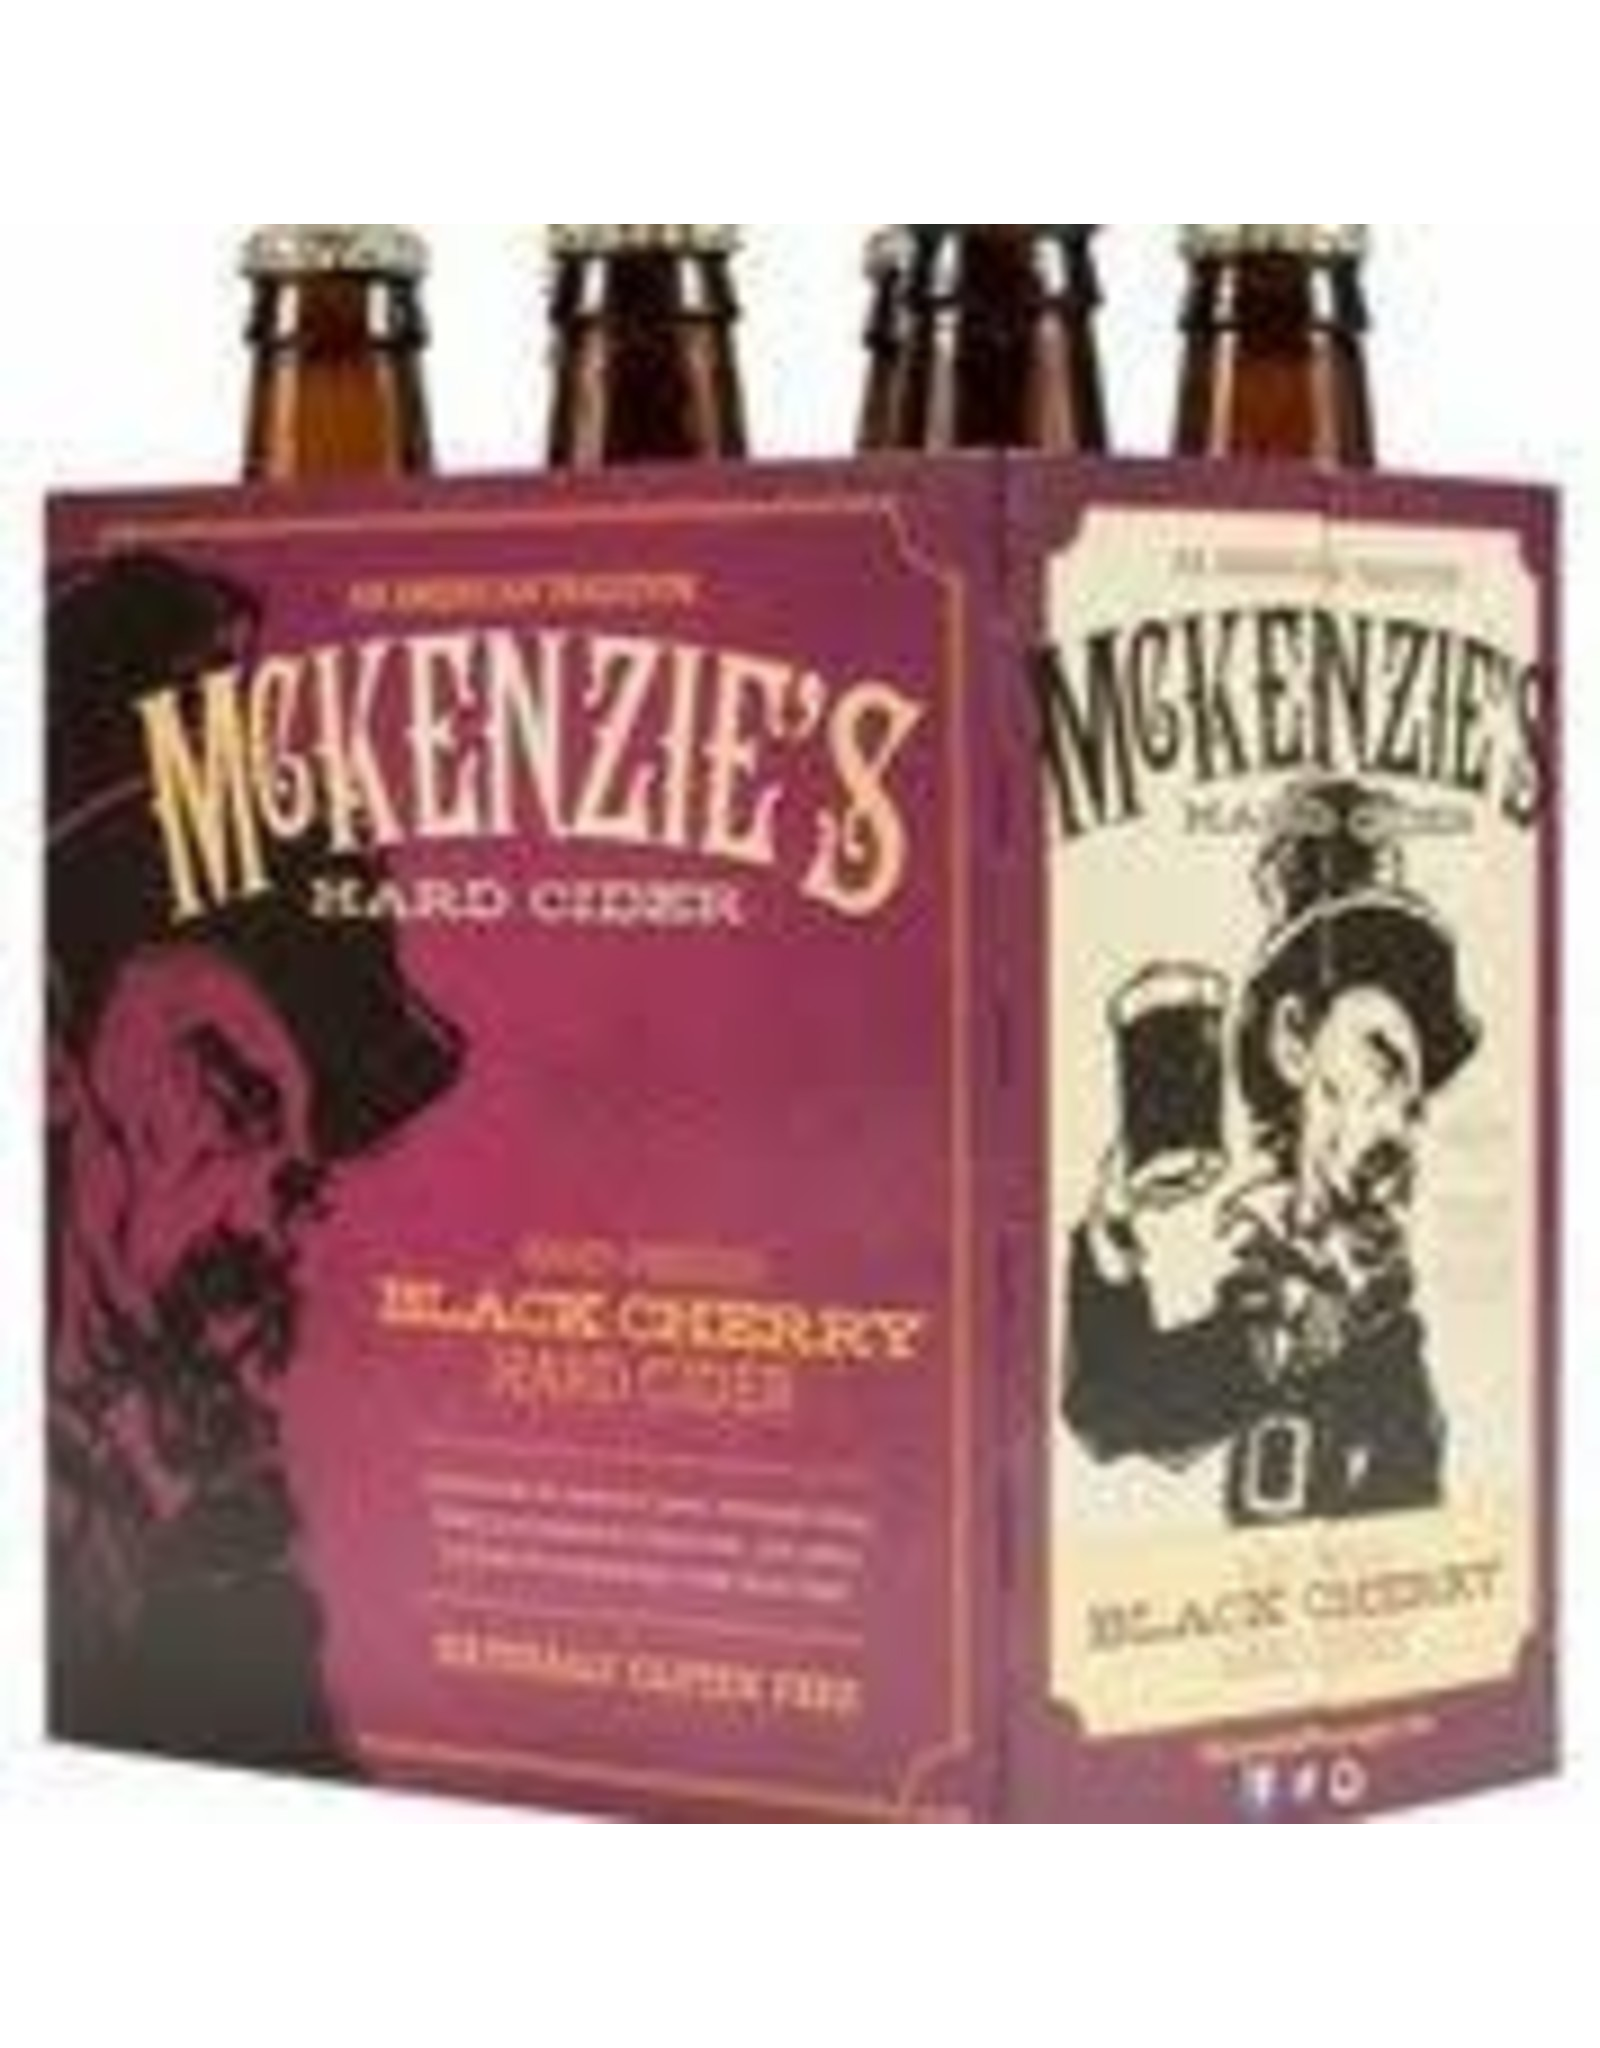 McKenzie's McKenzies Black Cherry 6pk bottle